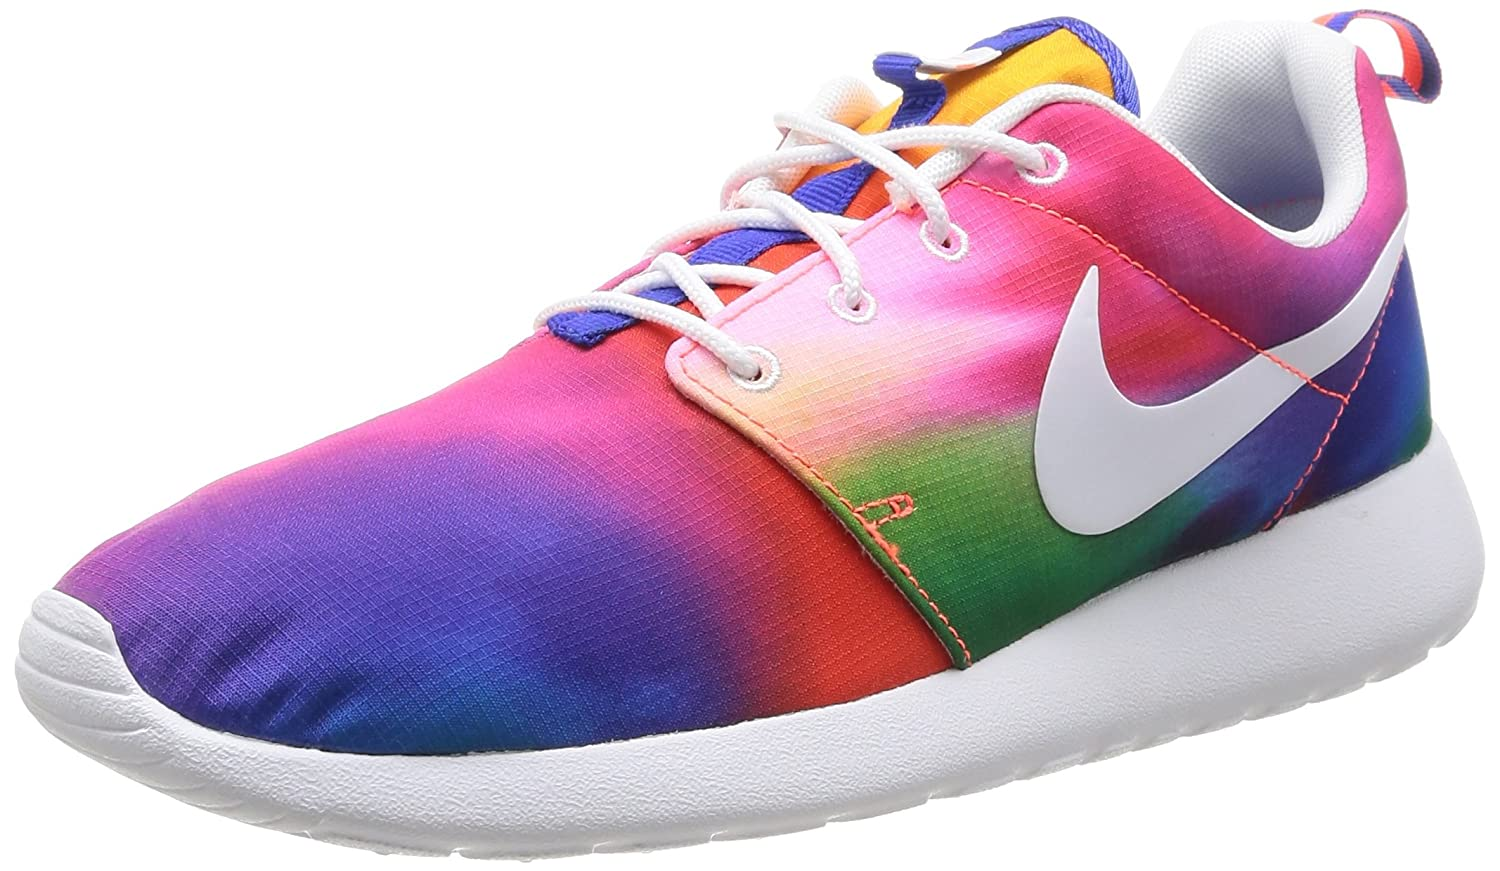 NIKE Mens Air Zoom Structure 19 D(M) Running Shoes B00NPEK7B0 9 D(M) 19 US|Court Purple/White-total Crimson a18a5c